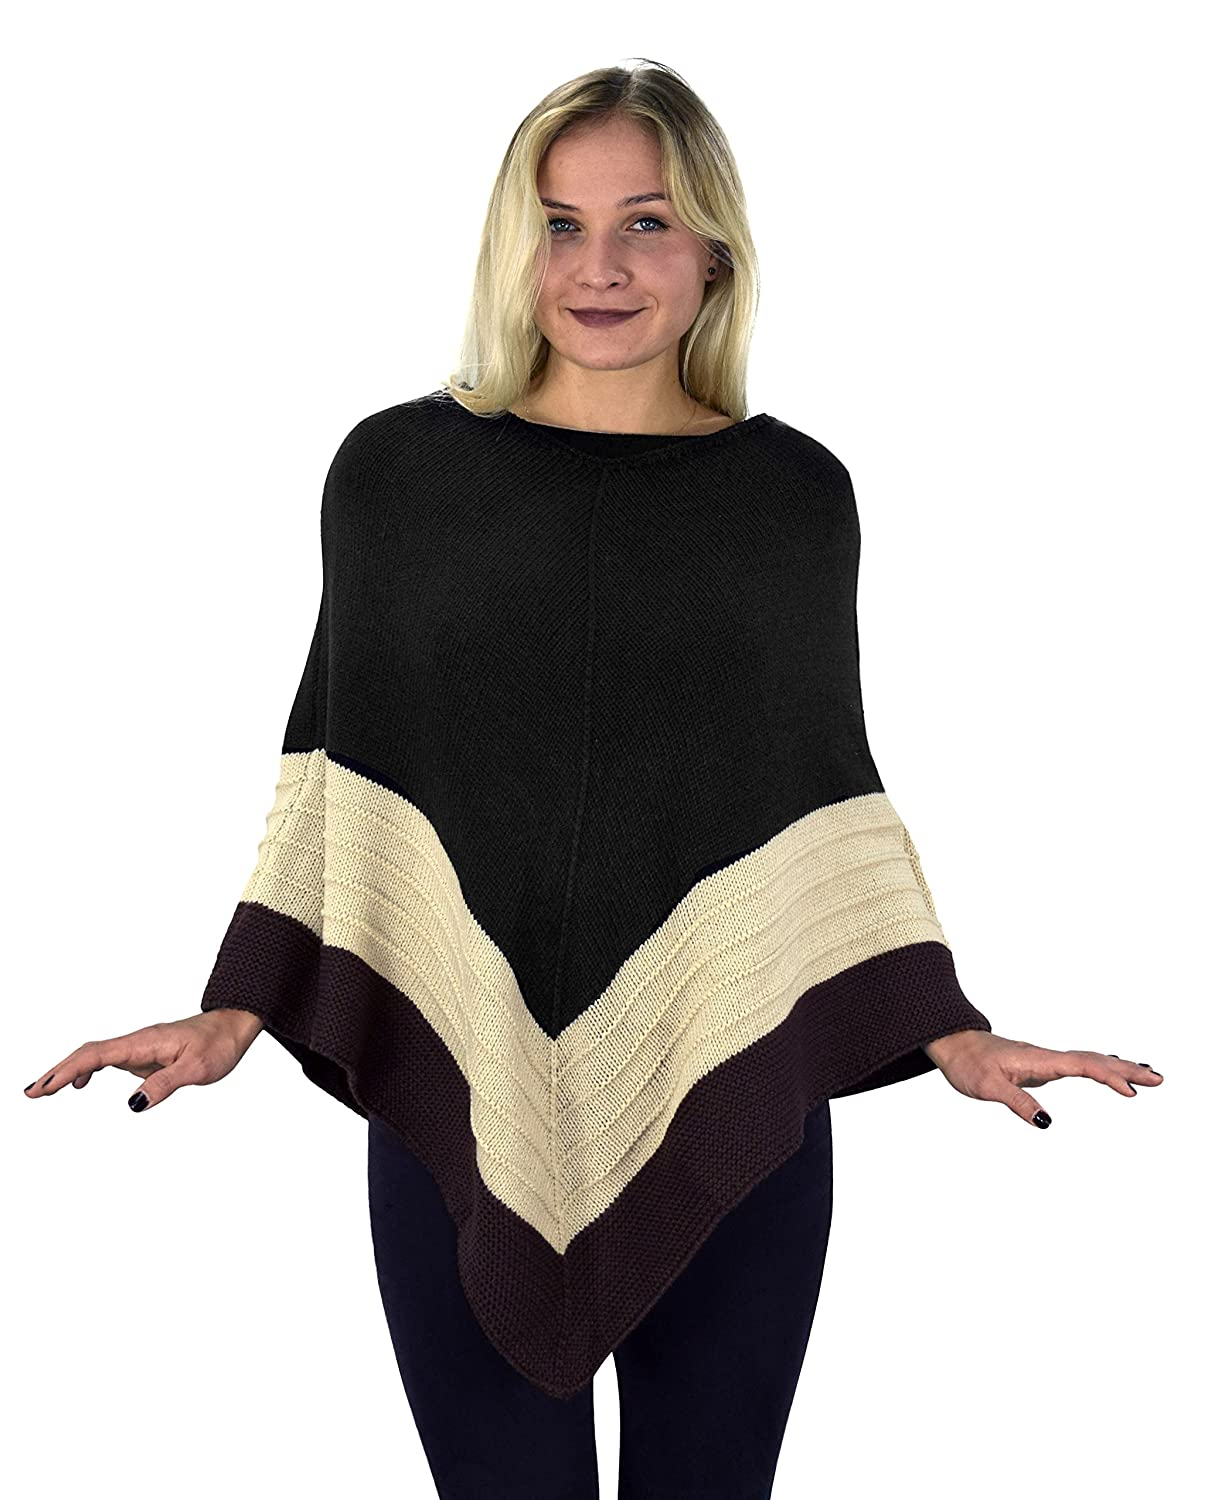 Peach Couture Women's Light Trendy Ruffle Batwing with Fringe Shawl Wrap Poncho Black/Taupe)